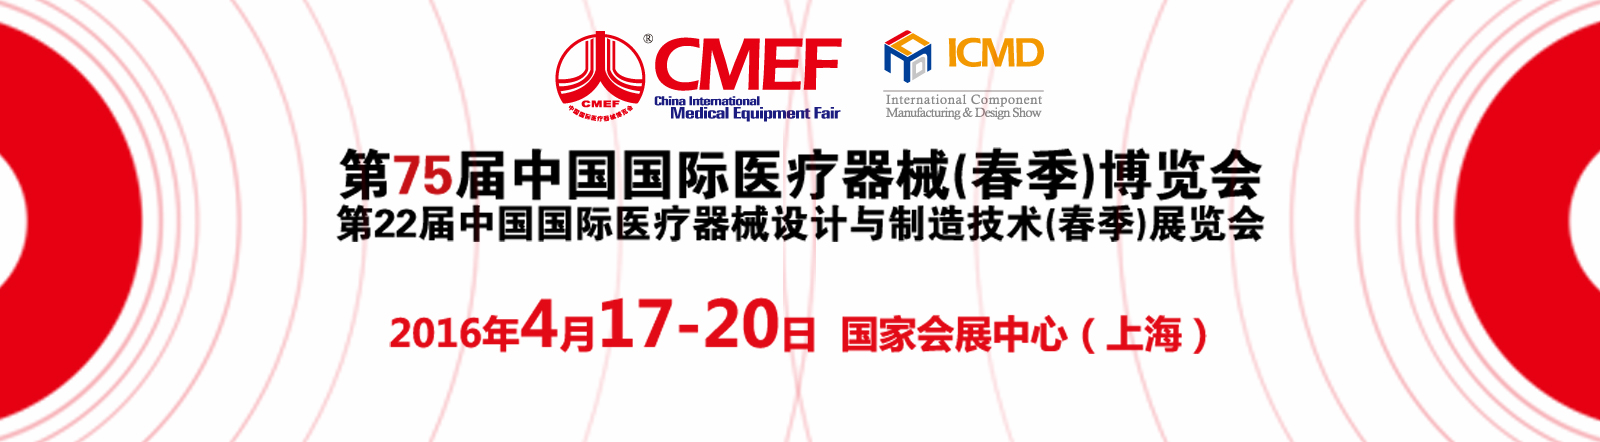 CMEF EXPO